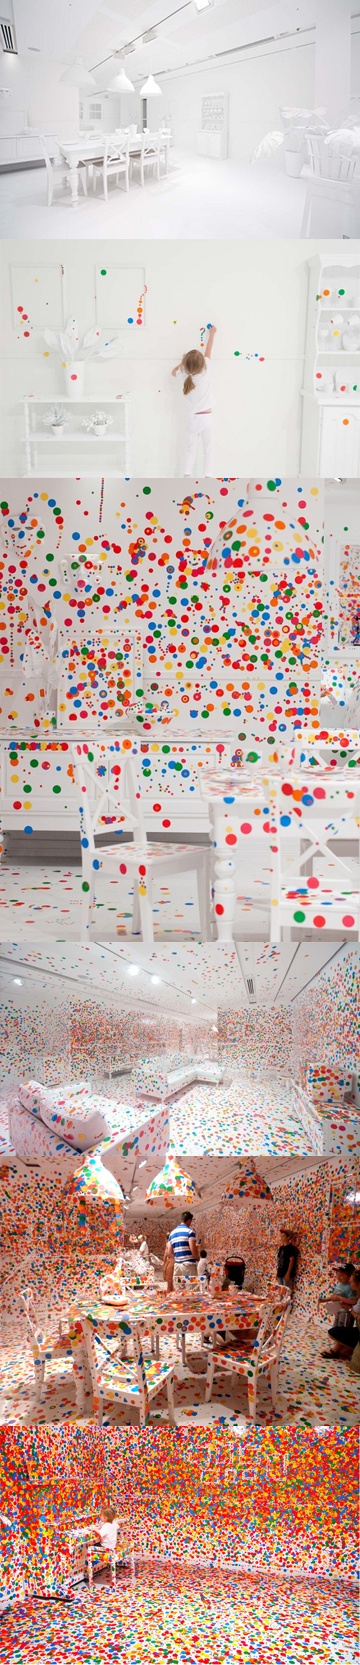 """the Obliteration Room"" - Yayoi Kusama -   Over a two-week period, the museum gave its young visitors stickers and let them decorate the all-white room. Here's what happened..."